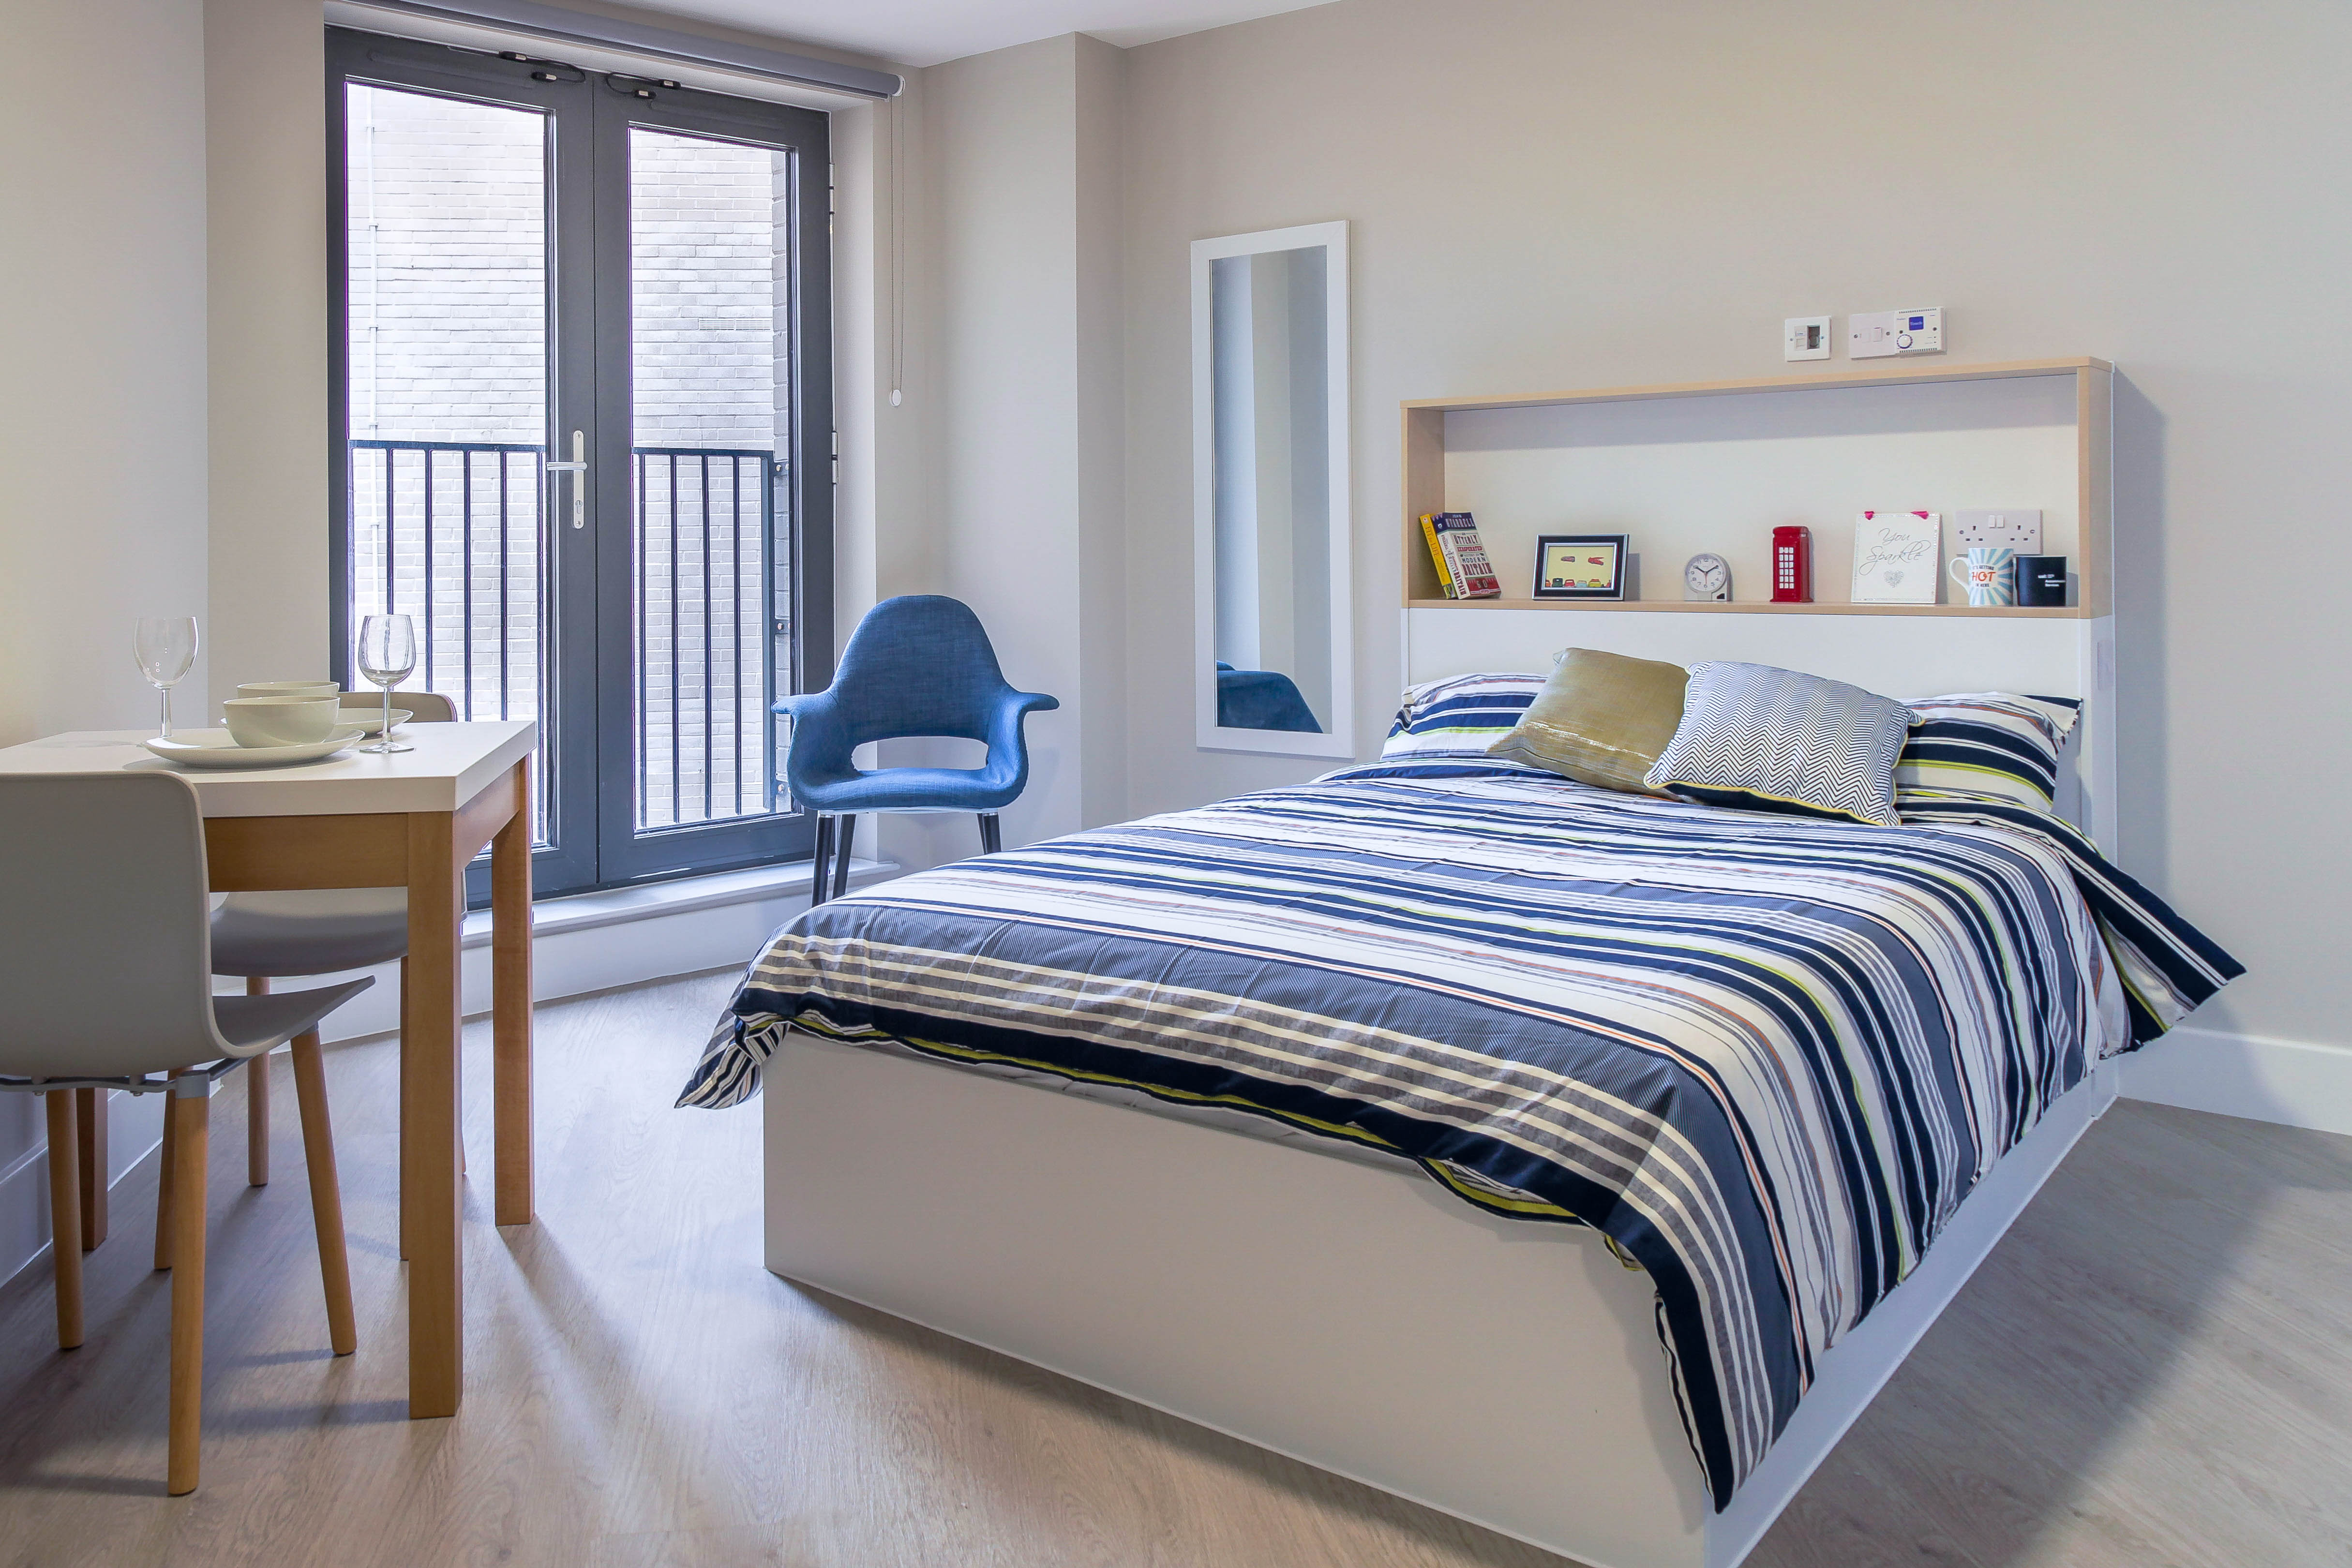 Photo Of A Double Bed In Student Room In Sketch House